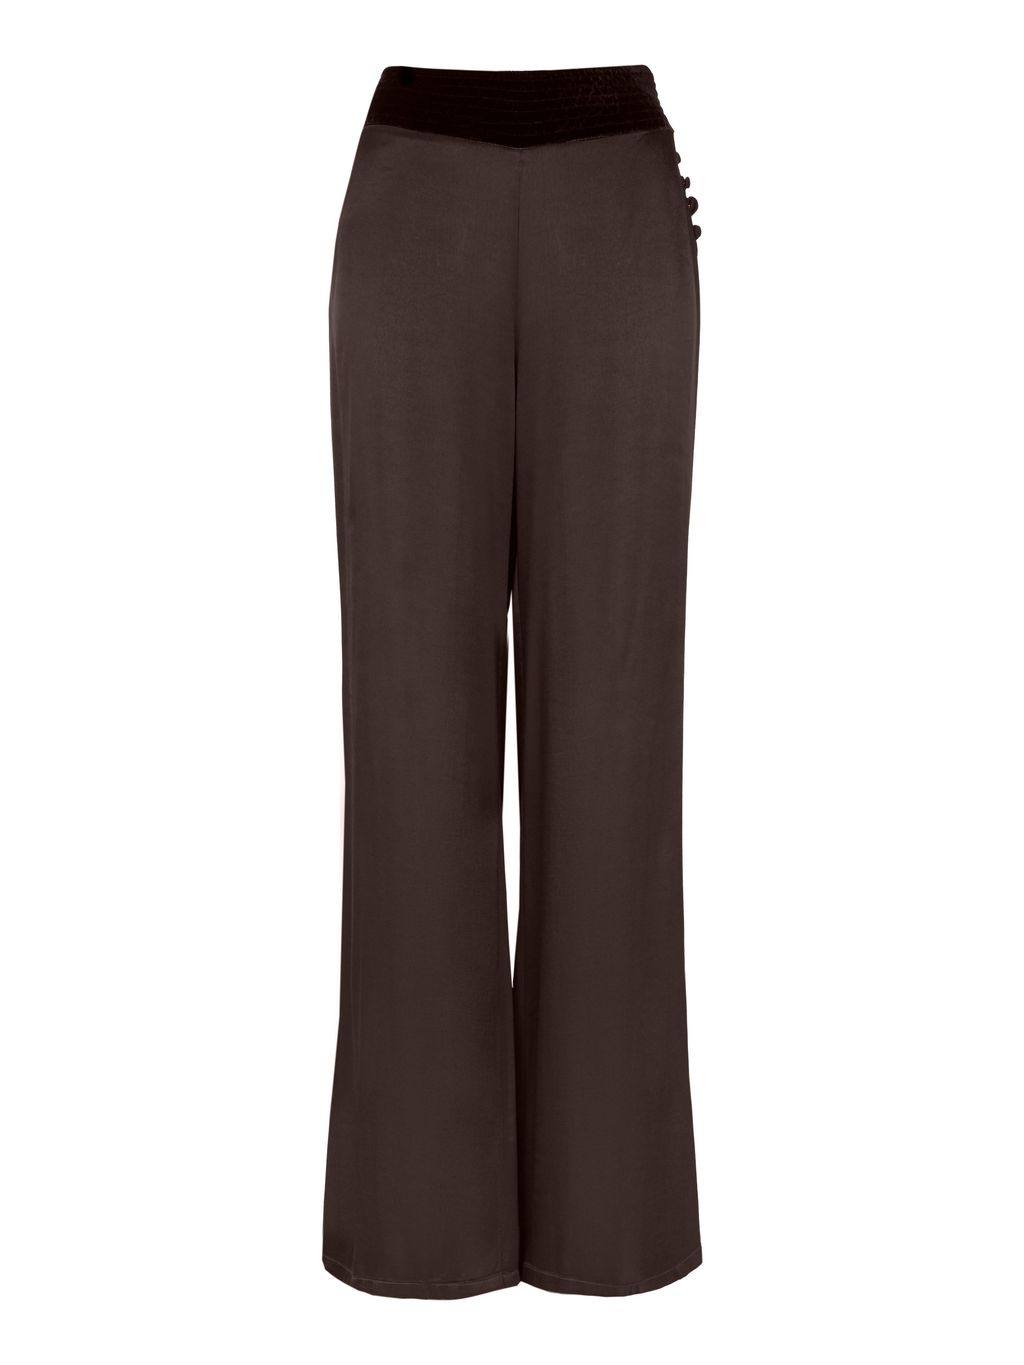 Alice Trousers Chocolate, Brown - length: standard; waist: high rise; predominant colour: chocolate brown; secondary colour: black; occasions: casual, work, creative work; fibres: viscose/rayon - 100%; waist detail: feature waist detail; fit: wide leg; pattern type: fabric; pattern: colourblock; texture group: woven light midweight; style: standard; pattern size: standard (bottom); season: s/s 2016; wardrobe: highlight